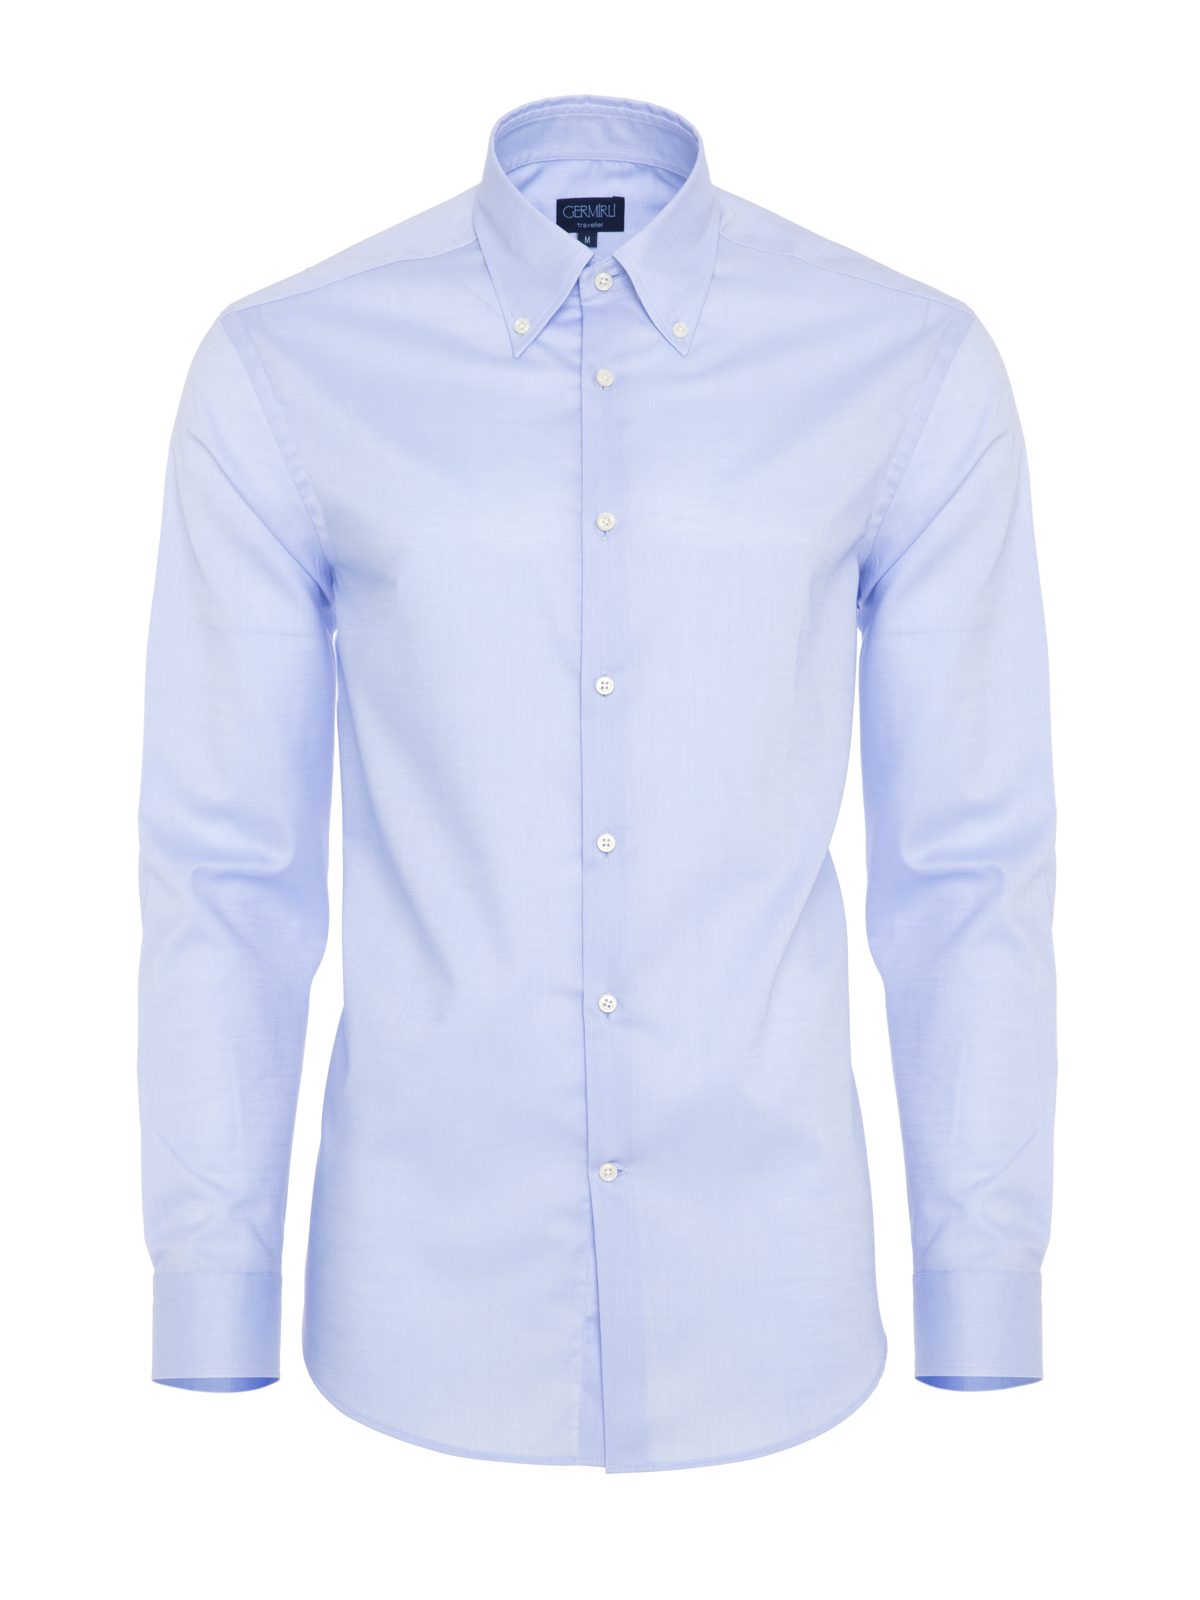 Germirli Non Iron Blue Oxford Button Down Collar Tailor Fit Shirt